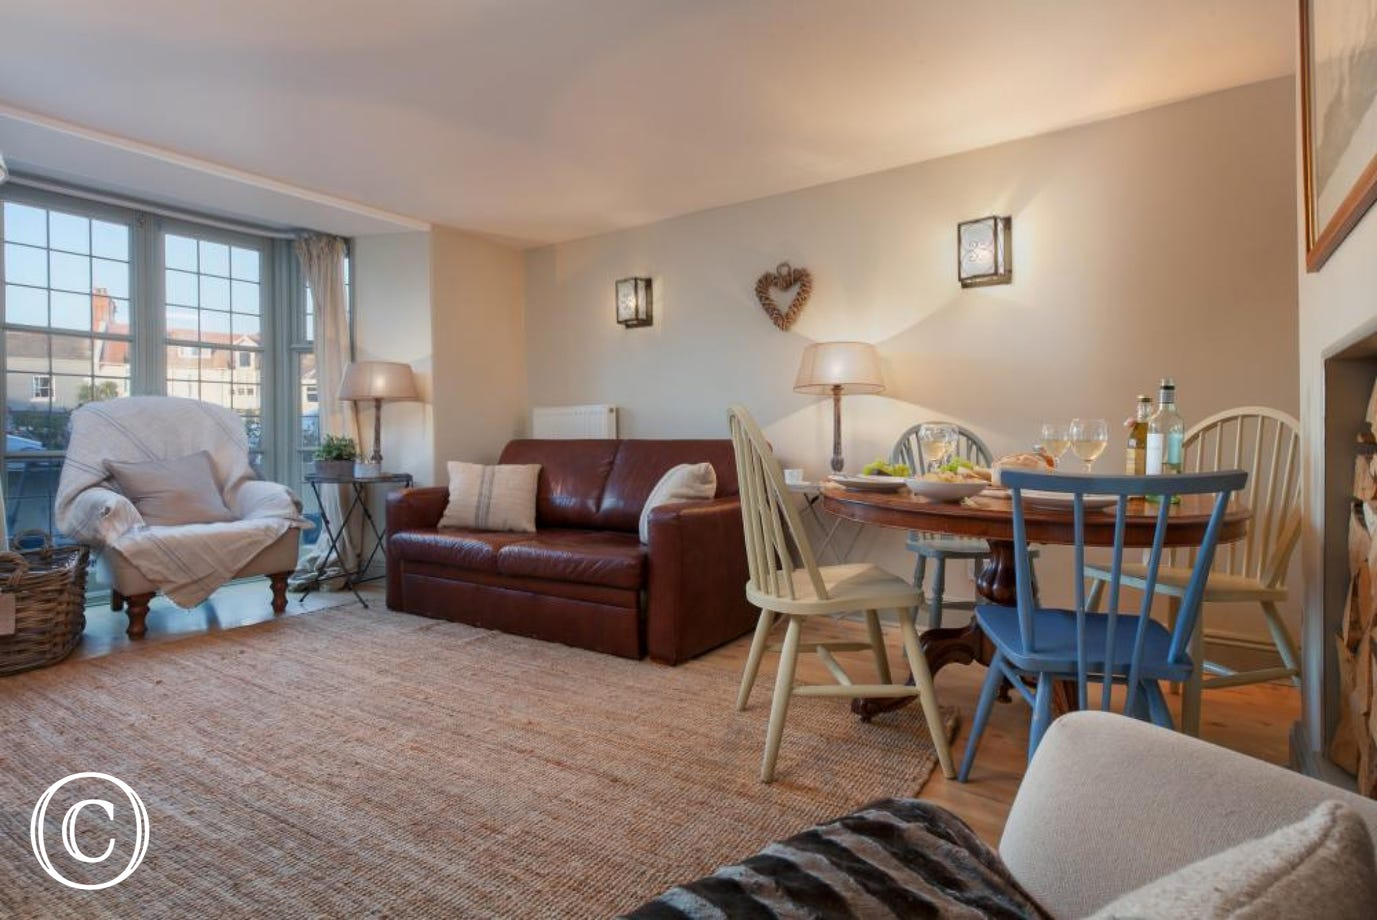 Living room and dining area - Compass Cottage, Shaldon